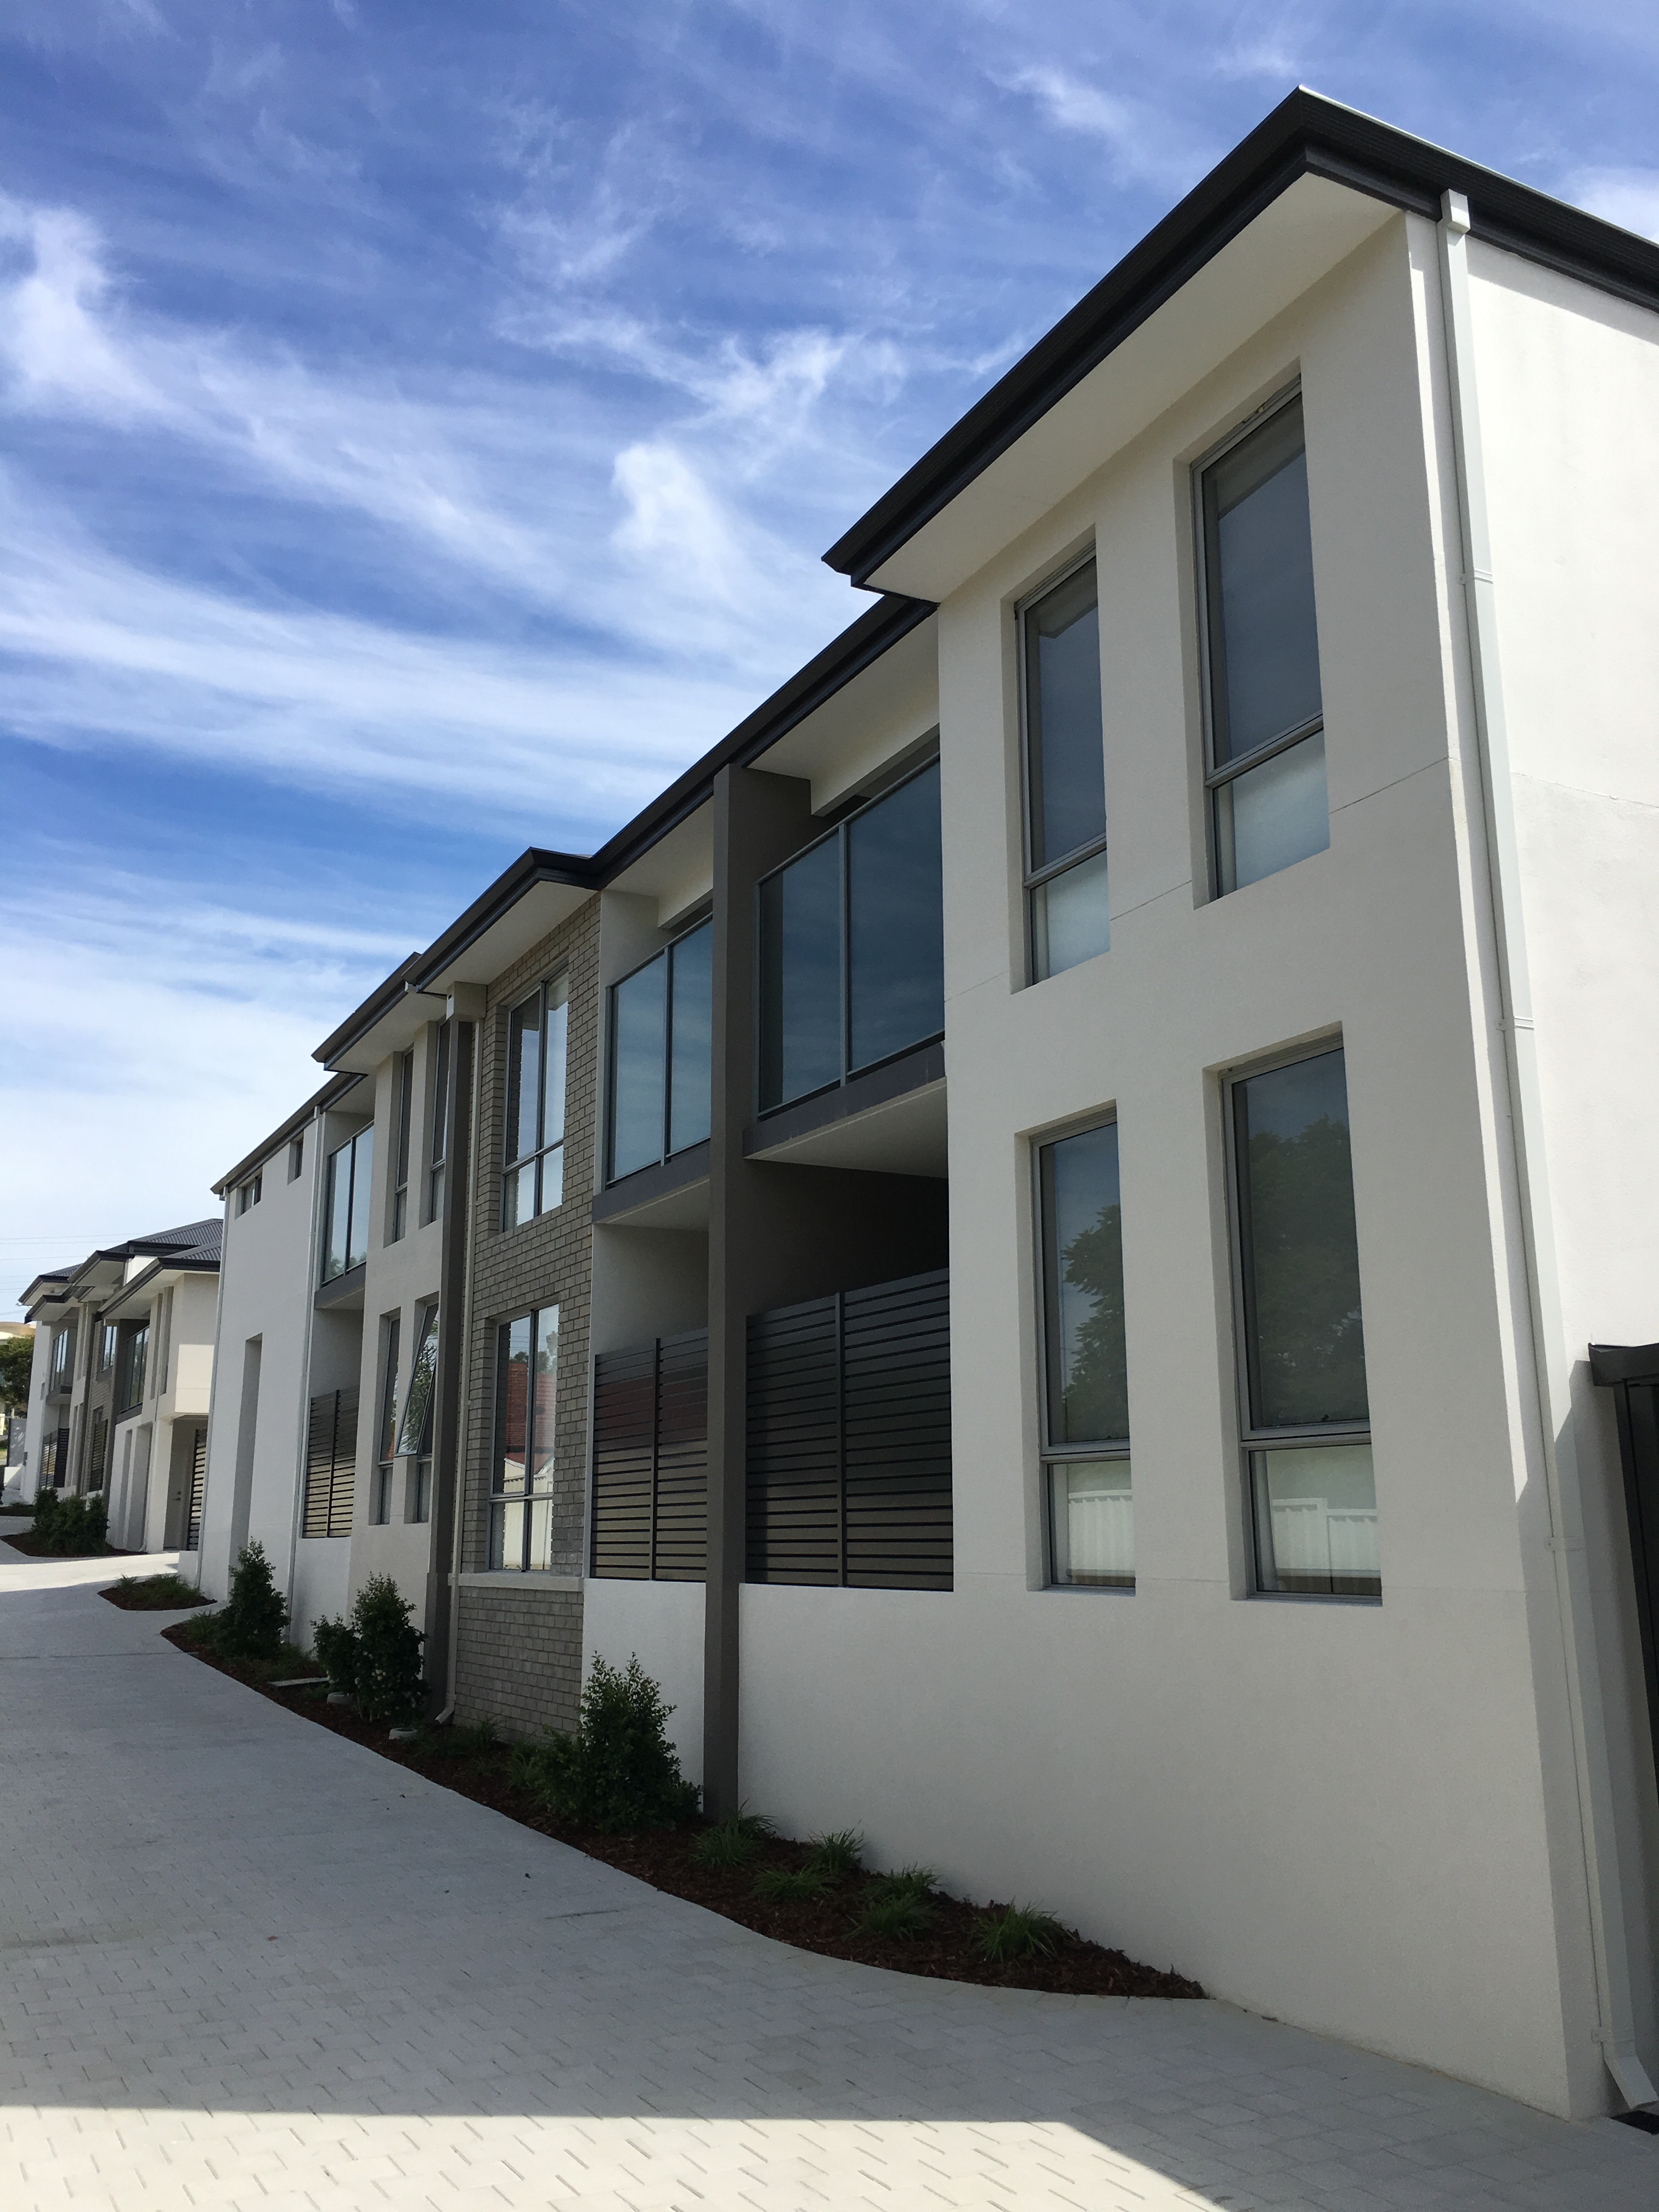 Exterior shot of large multi-unit complex painted in light grey and finished with dark grey and brick accents